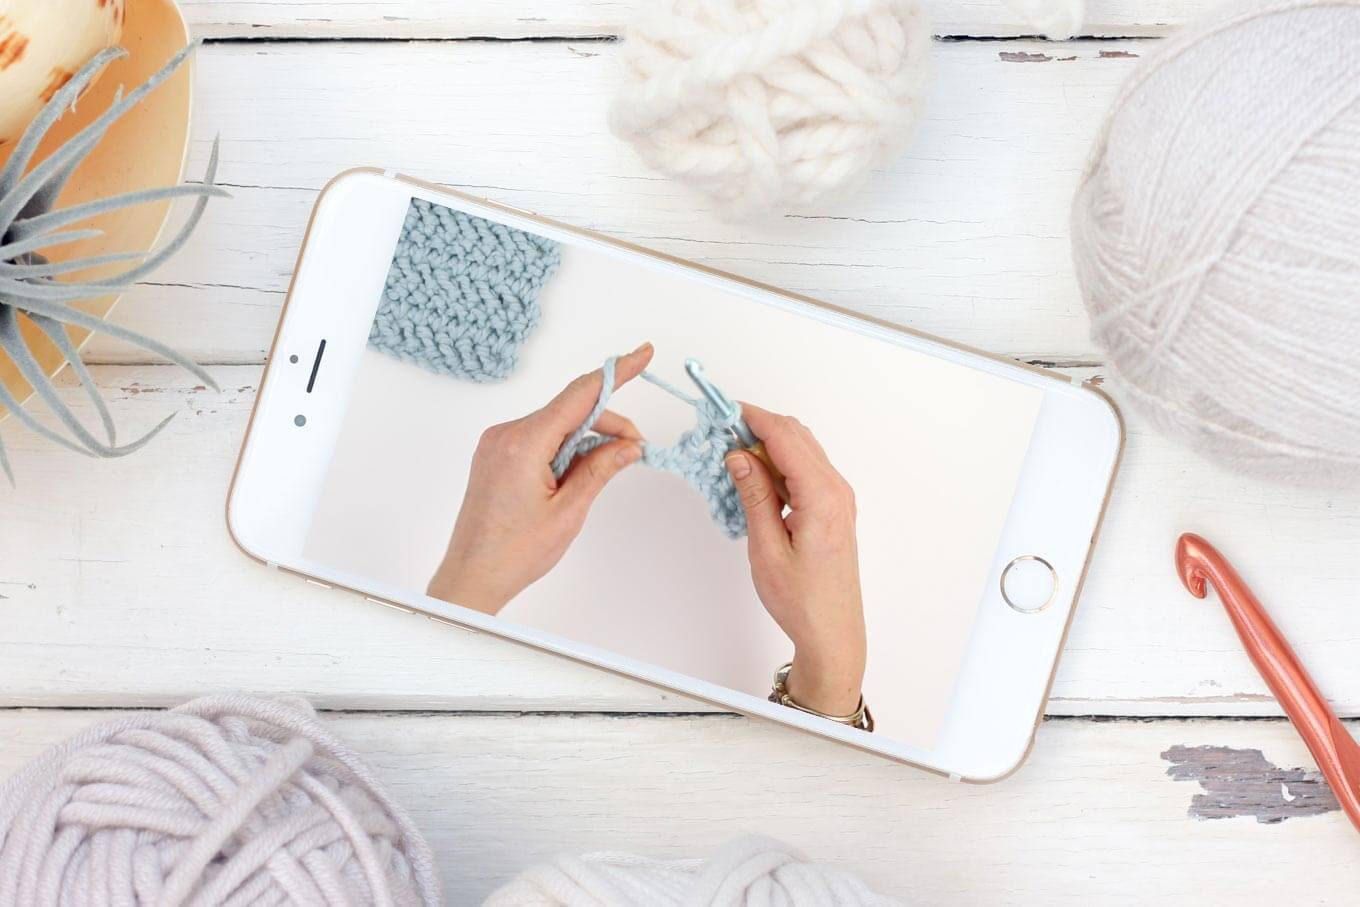 Learn how to crochet the herringbone double crochet stitch in this easy video tutorial. This modern-looking stitch is great for afghans, scarves and striped projects. Because it's based on double crochet, it also worked up really quickly!